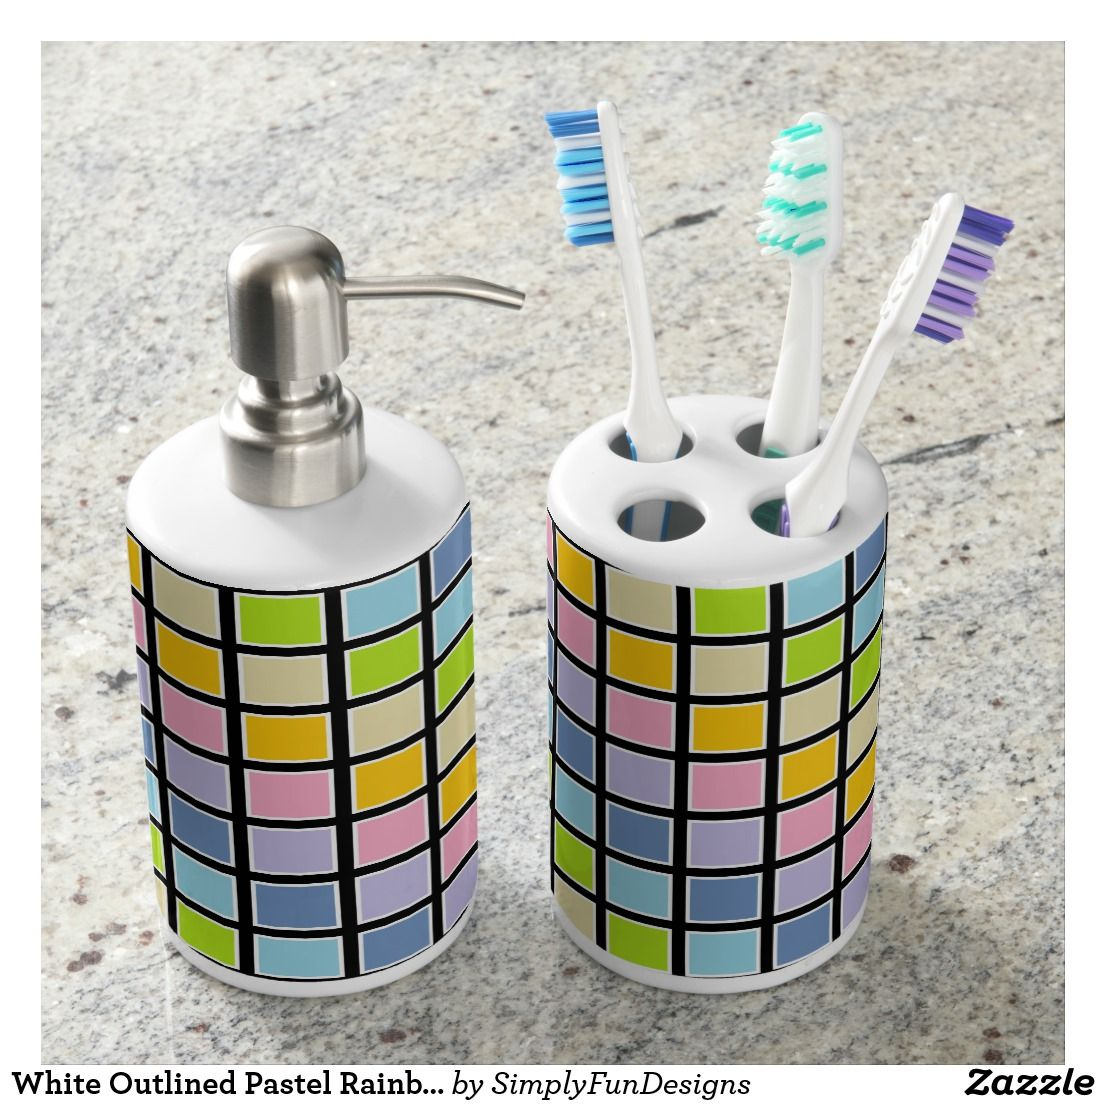 White Outlined Pastel Rainbow Squares Soap Dispenser And Toothbrush Holder